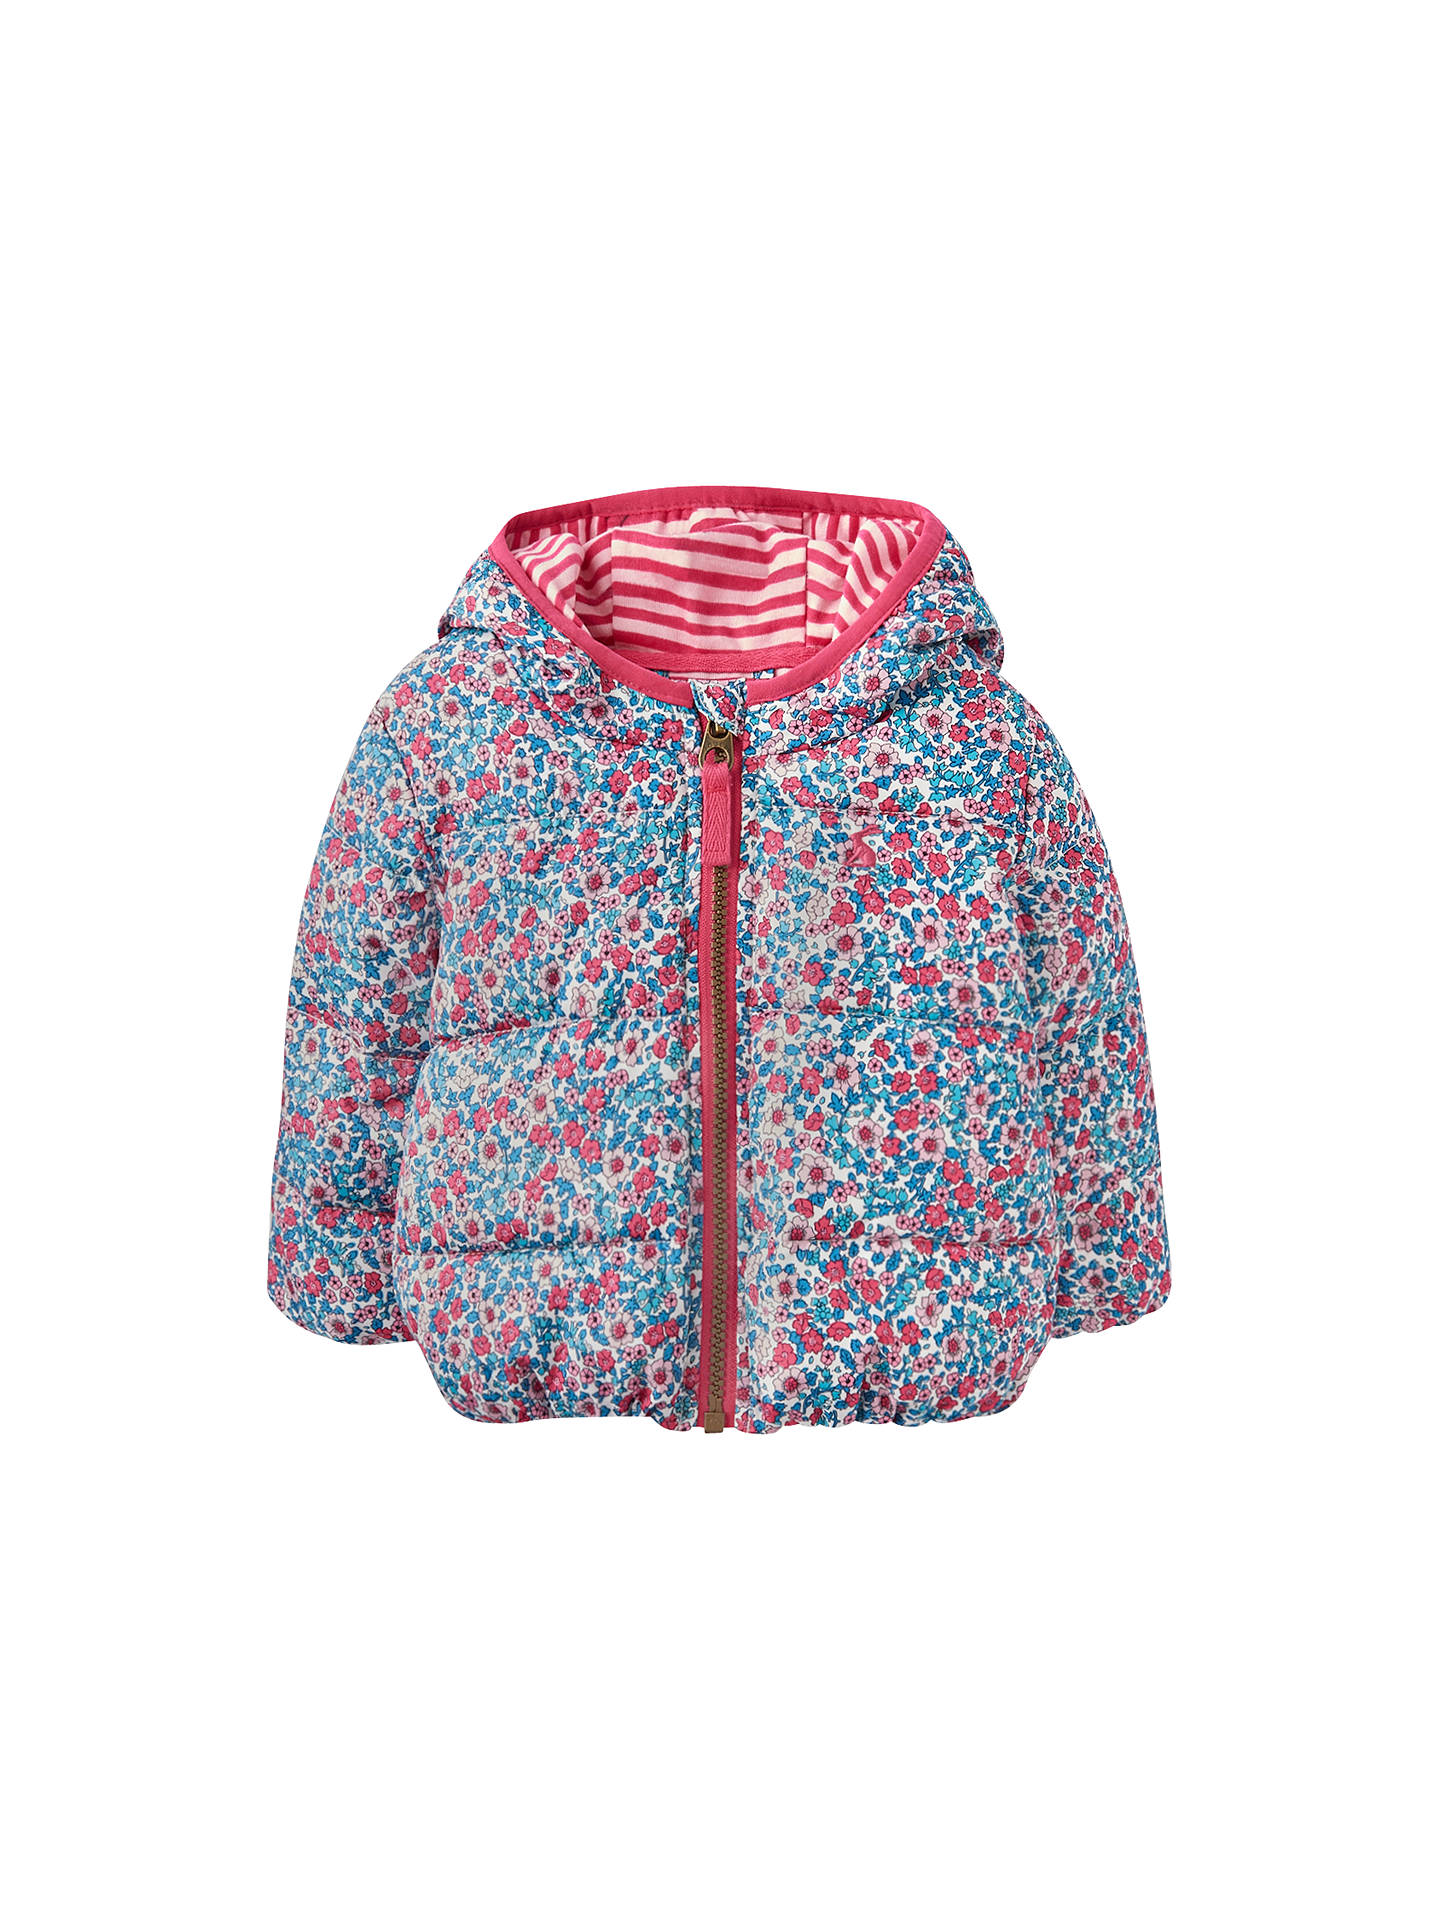 Joules Baby Coat Clothes, Shoes & Accessories